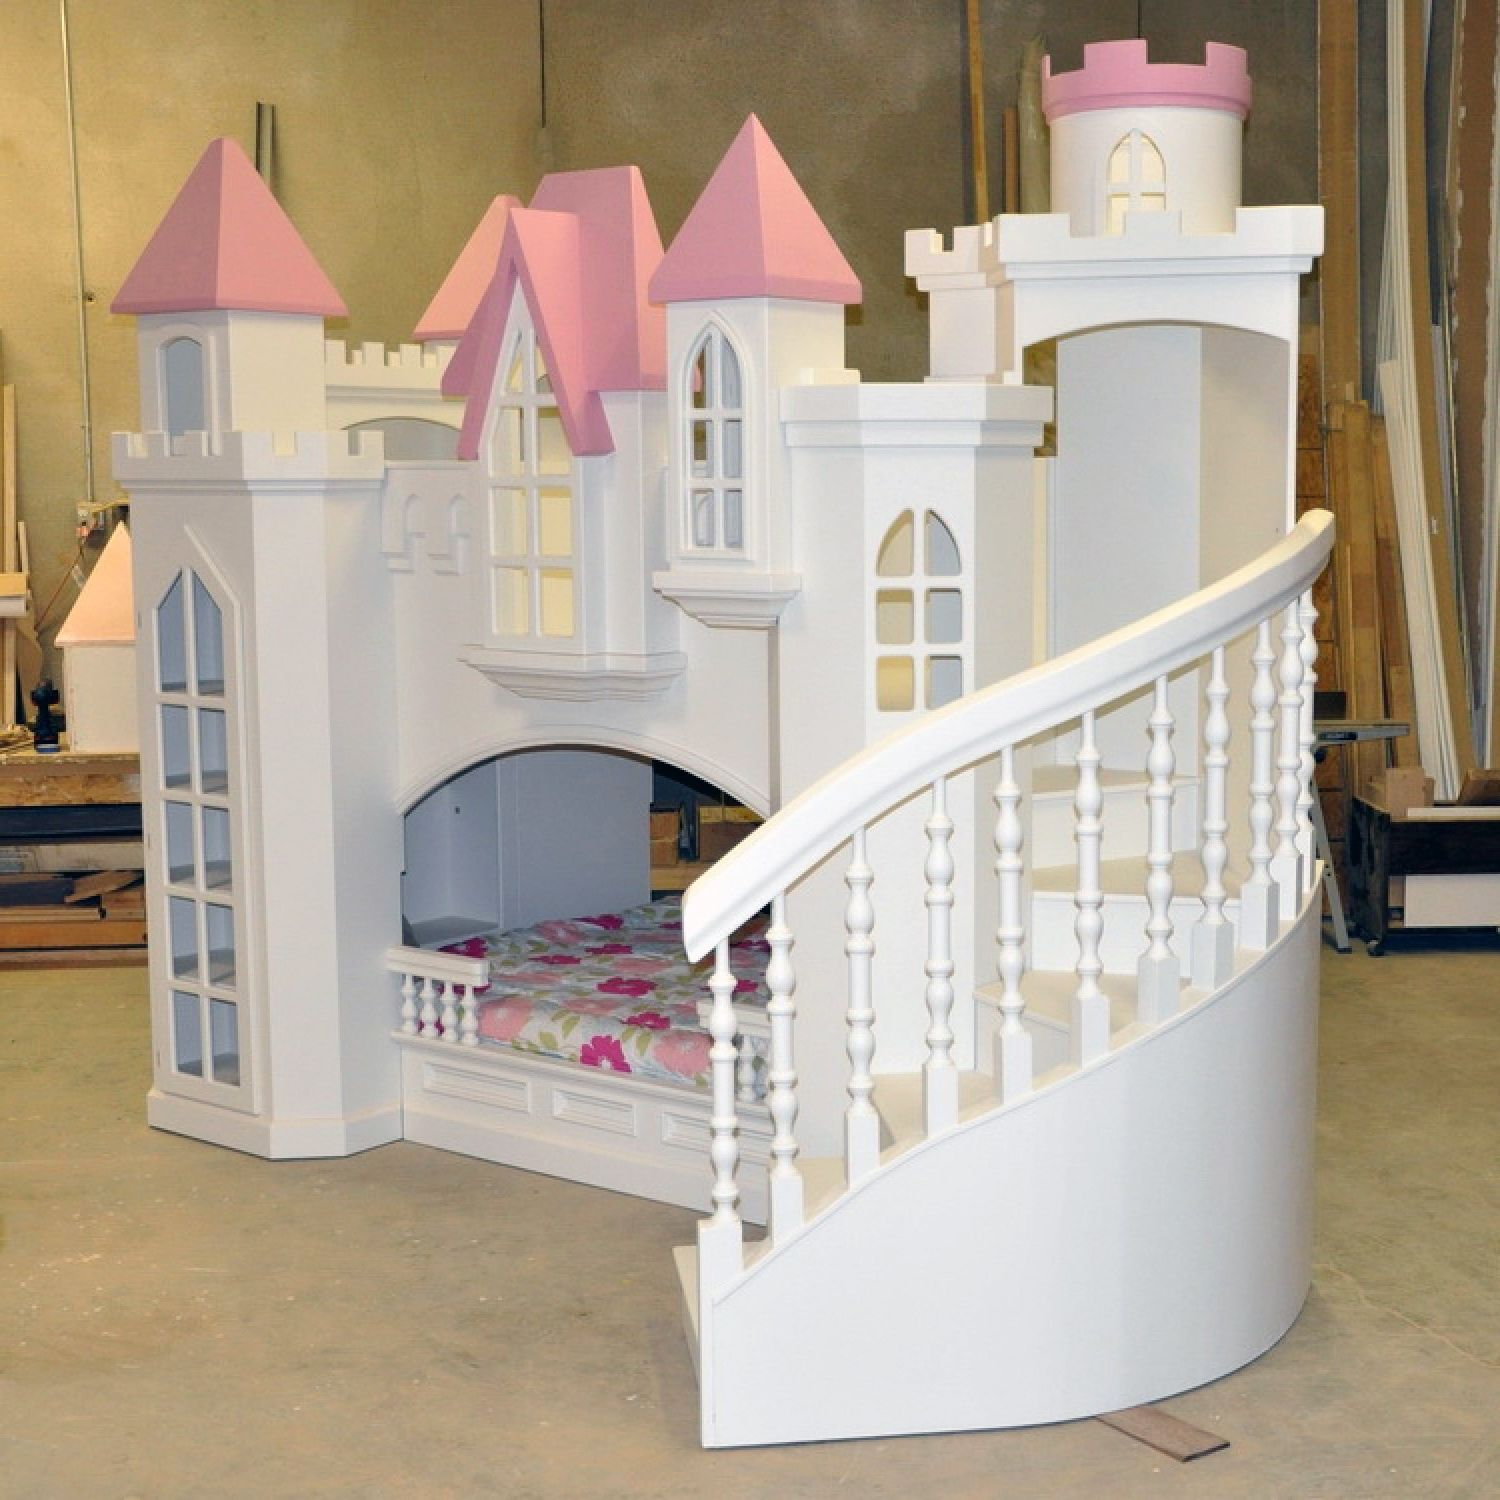 Bedroom furniture for girls castle - Unique Bunk Beds Unique Bunk Beds For Kids Bedroom Design Ideas Excellent Castle Bunk